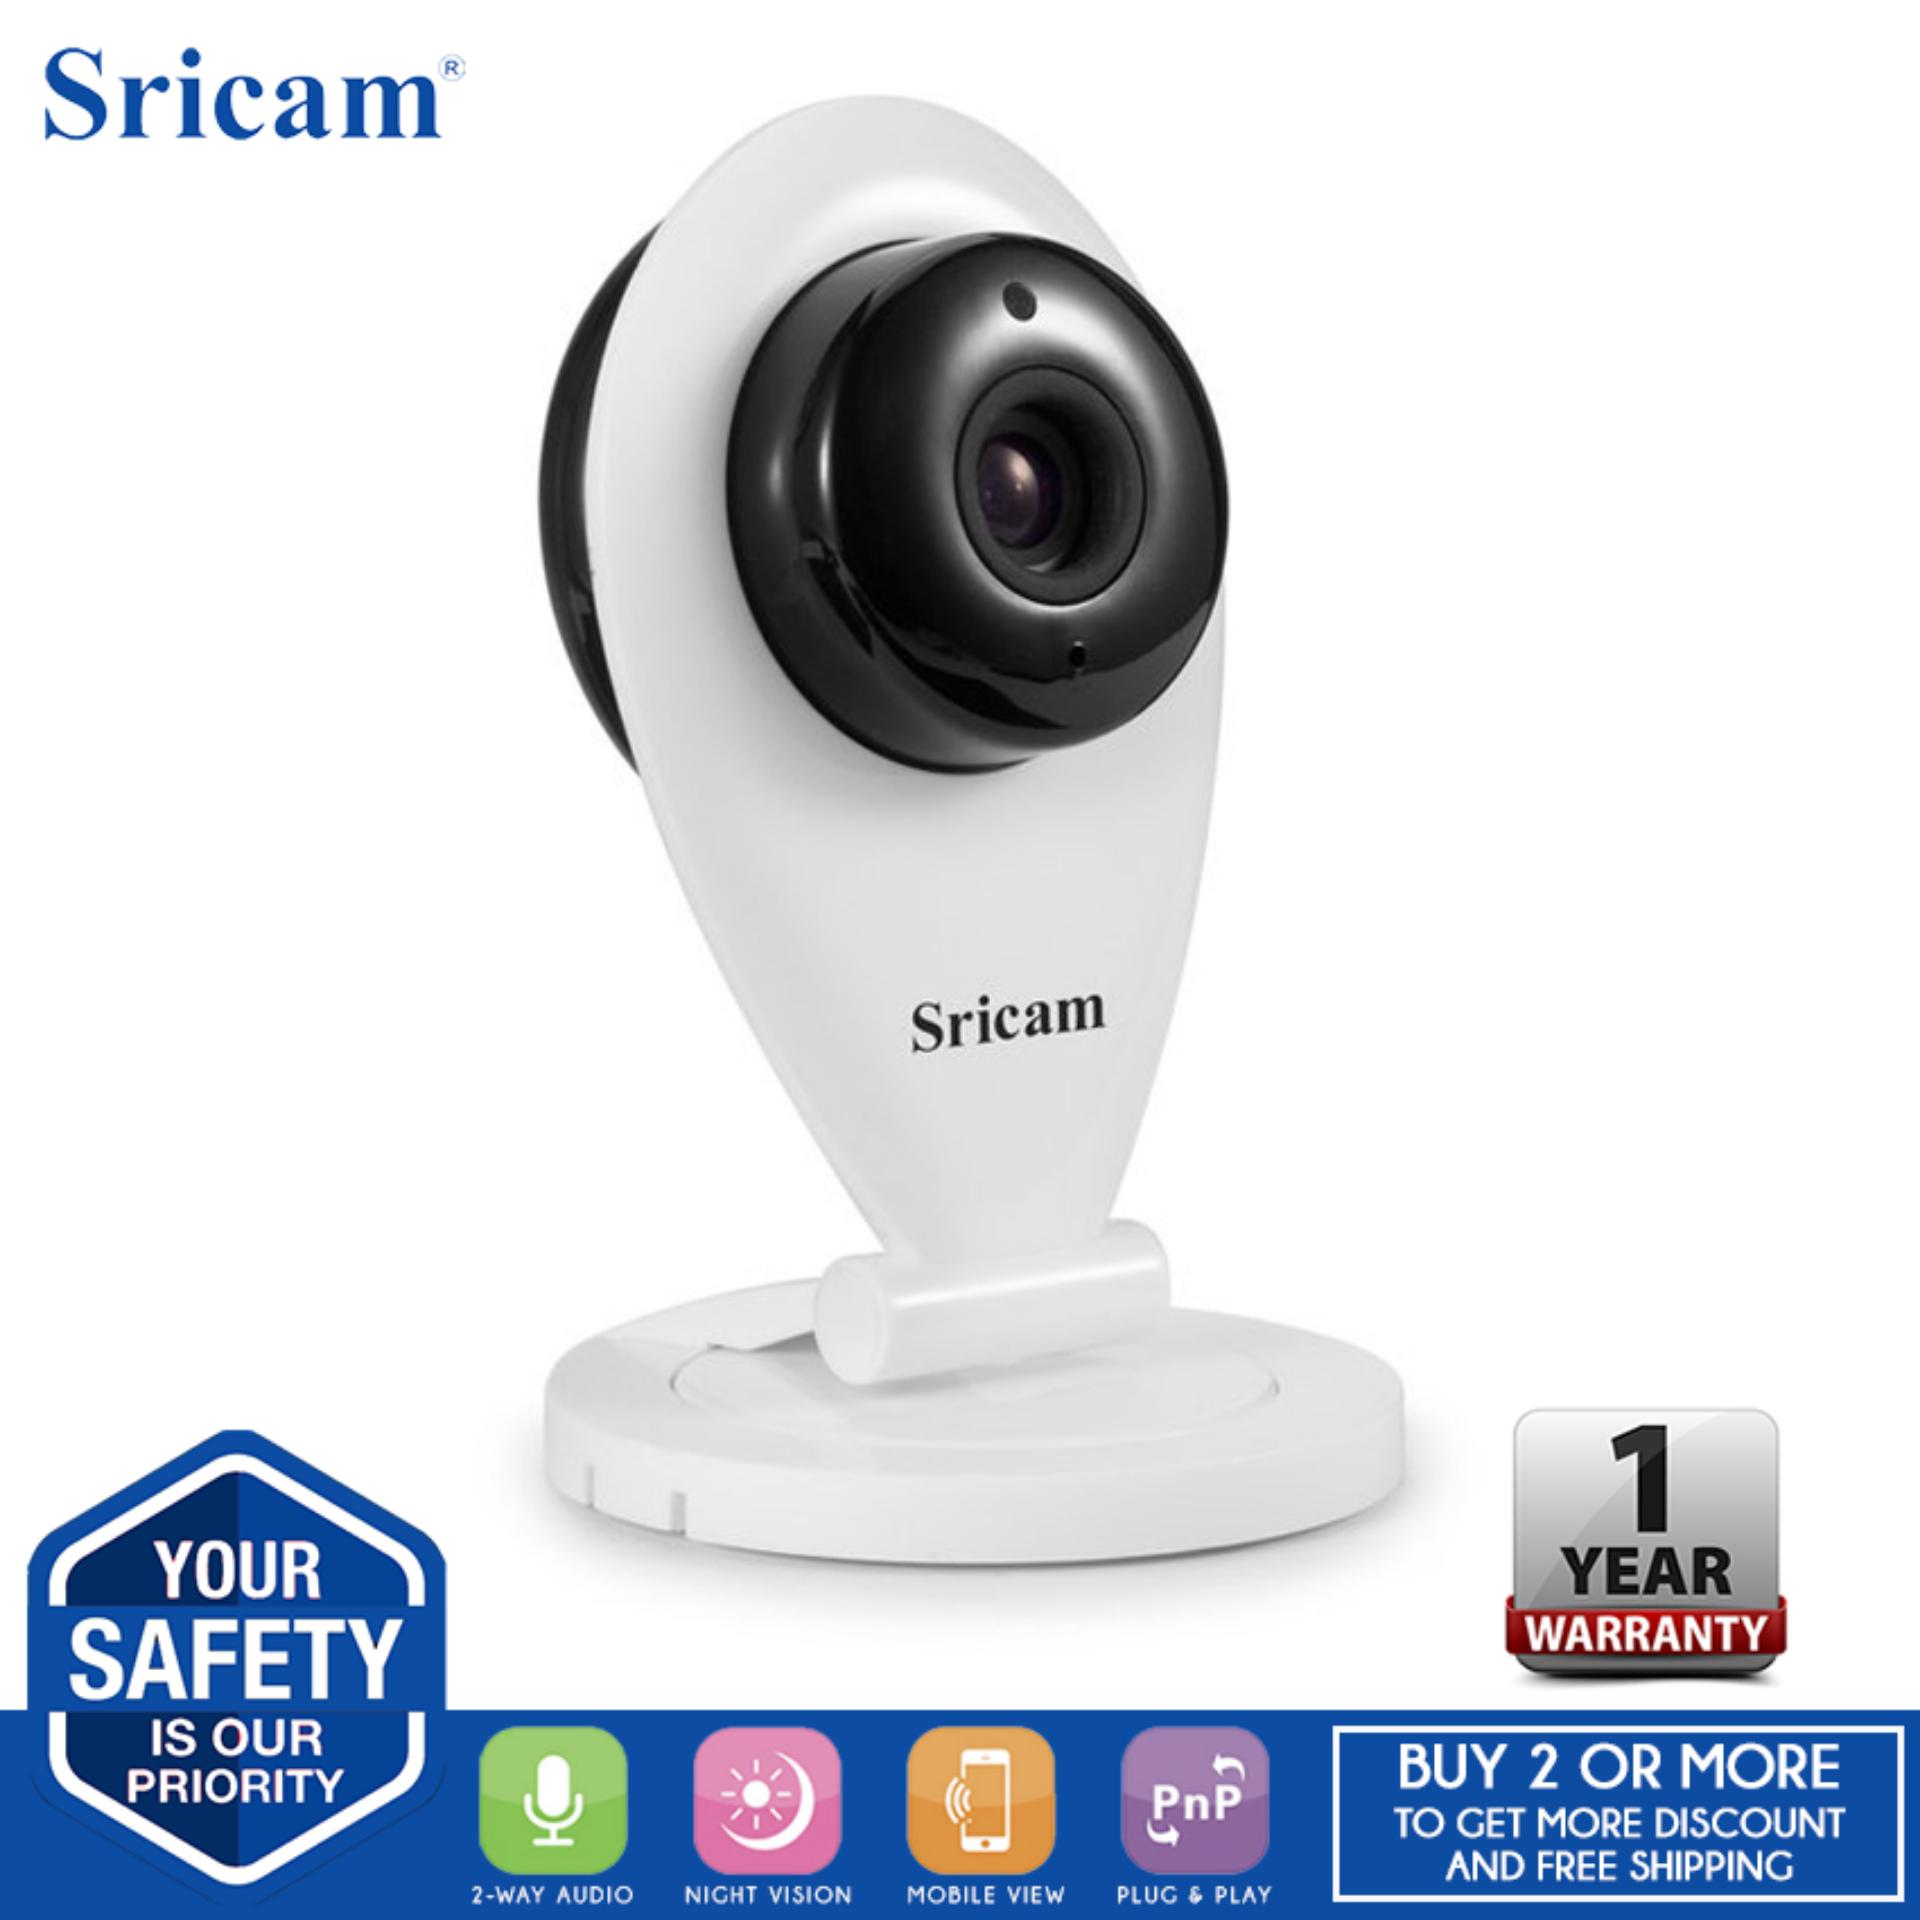 Sricam SP009 Wifi CCTV w/ Infrared Night Vision & Two-way talk feature Camera (White)